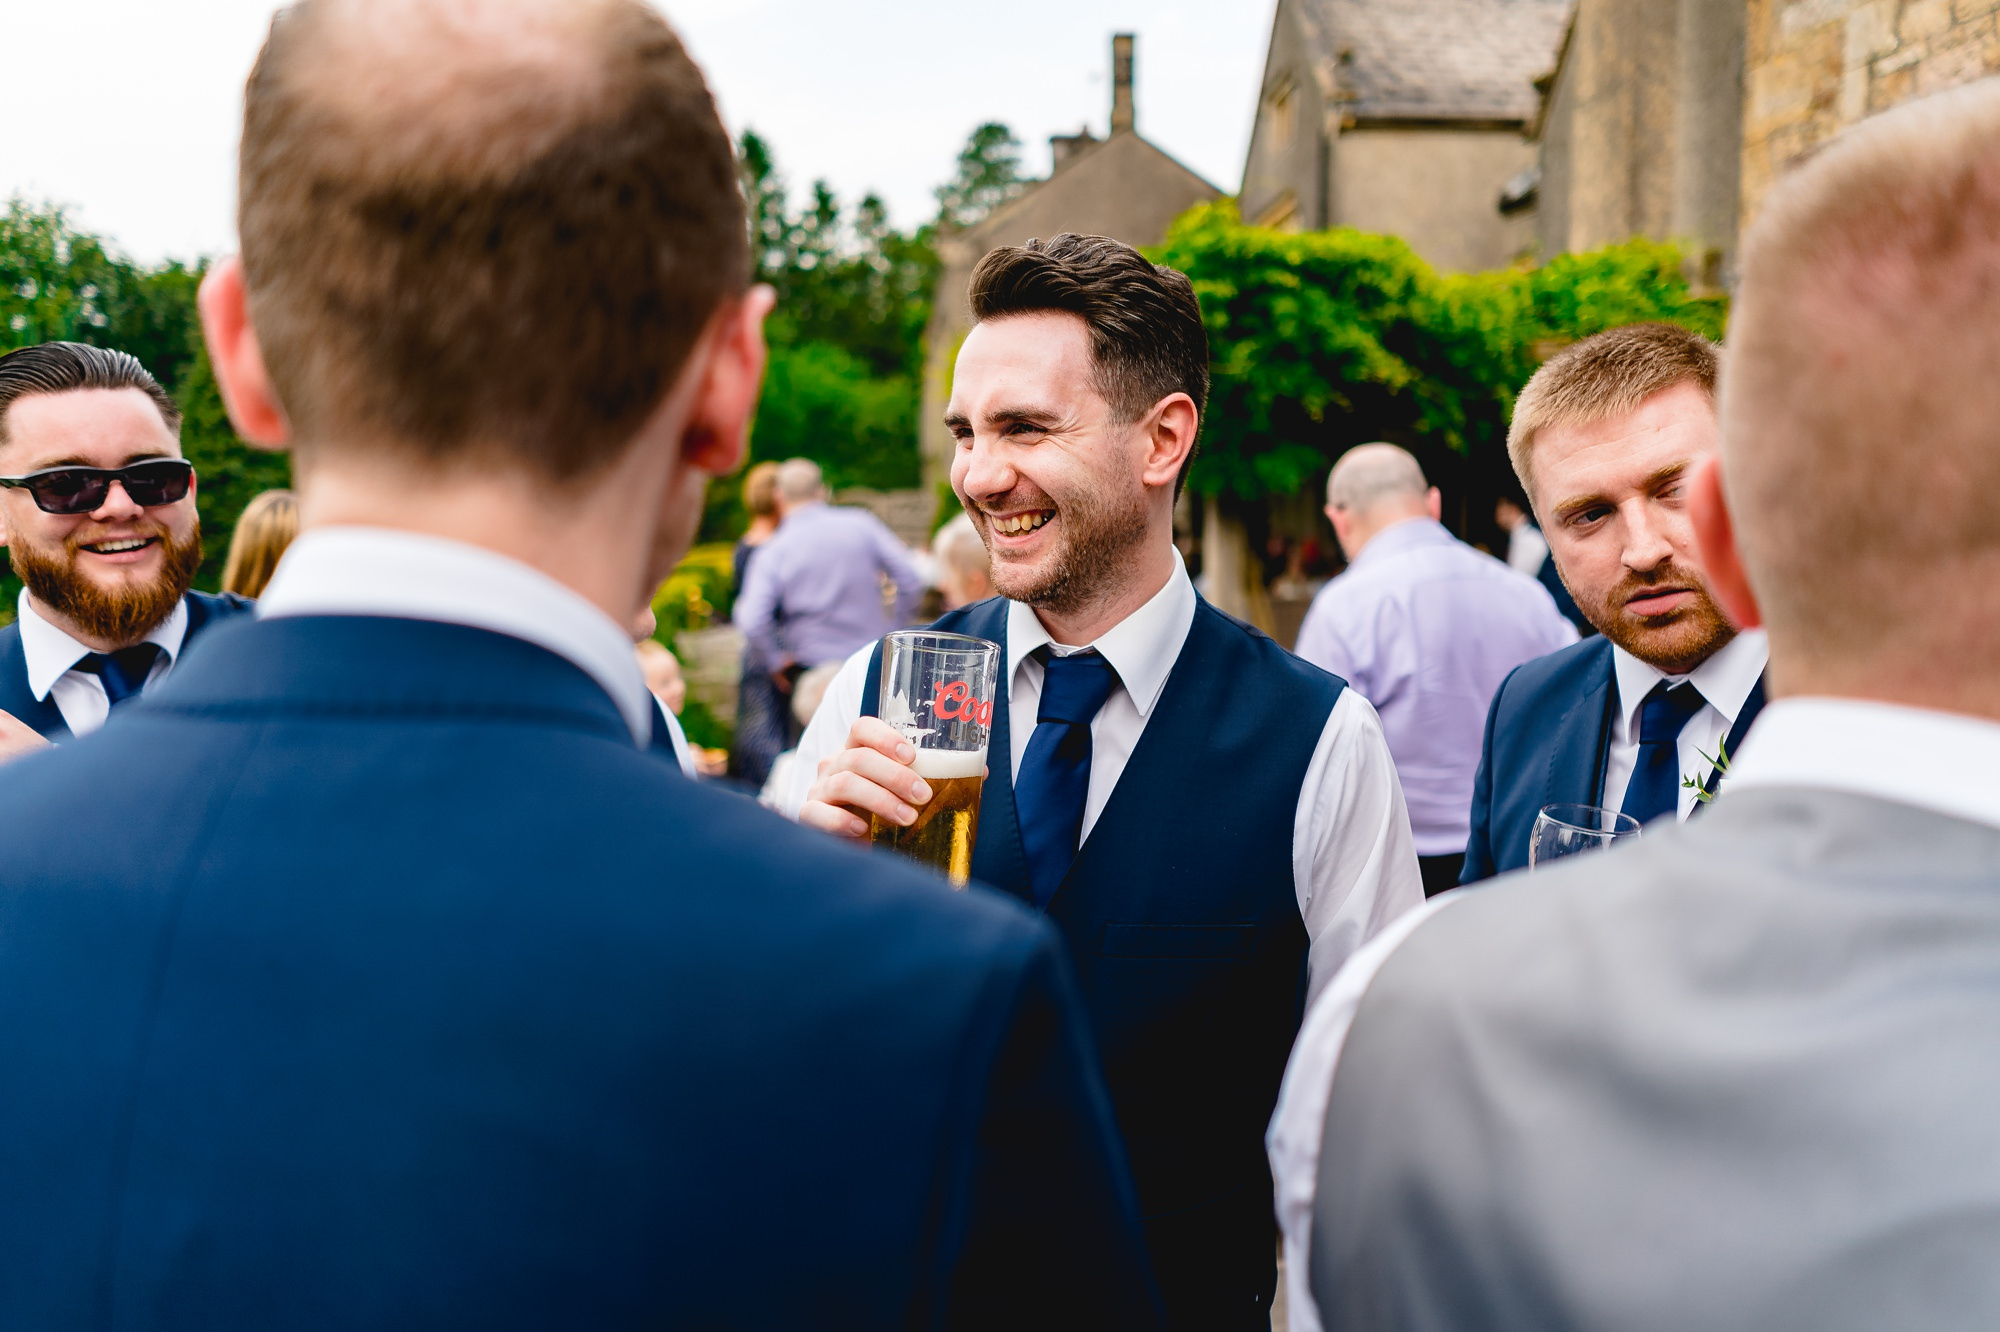 Mitton-Hall-Wedding-Photographer_0018-1.jpg